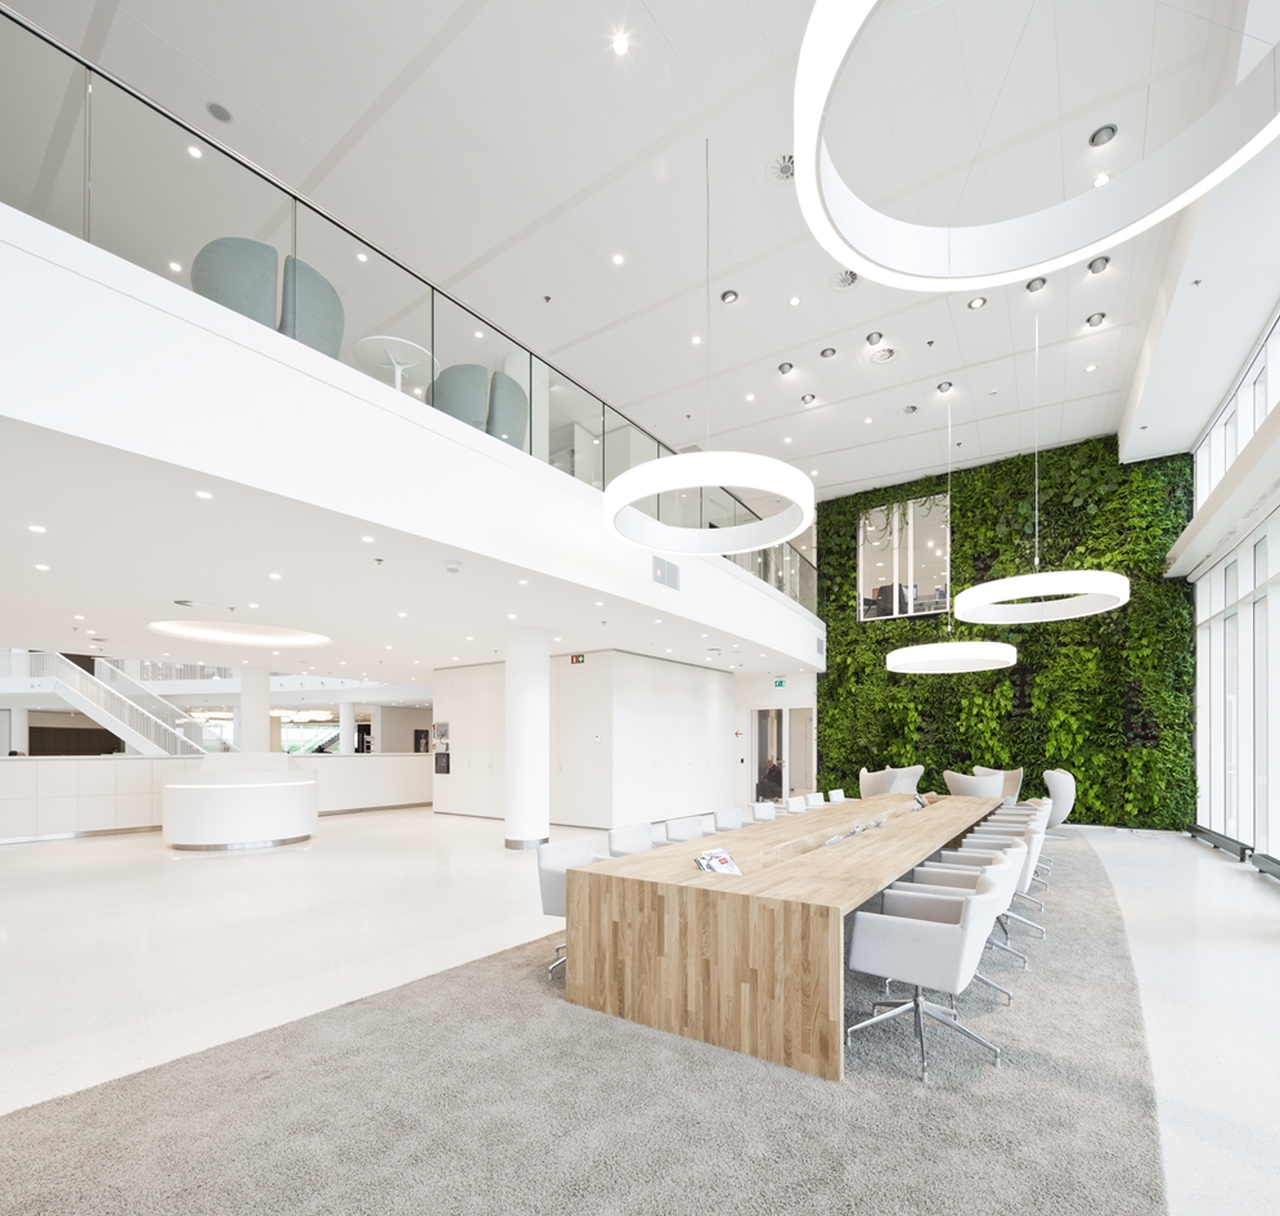 Eneco Headquarter Rotterdam / Hofman Dujardin Architects